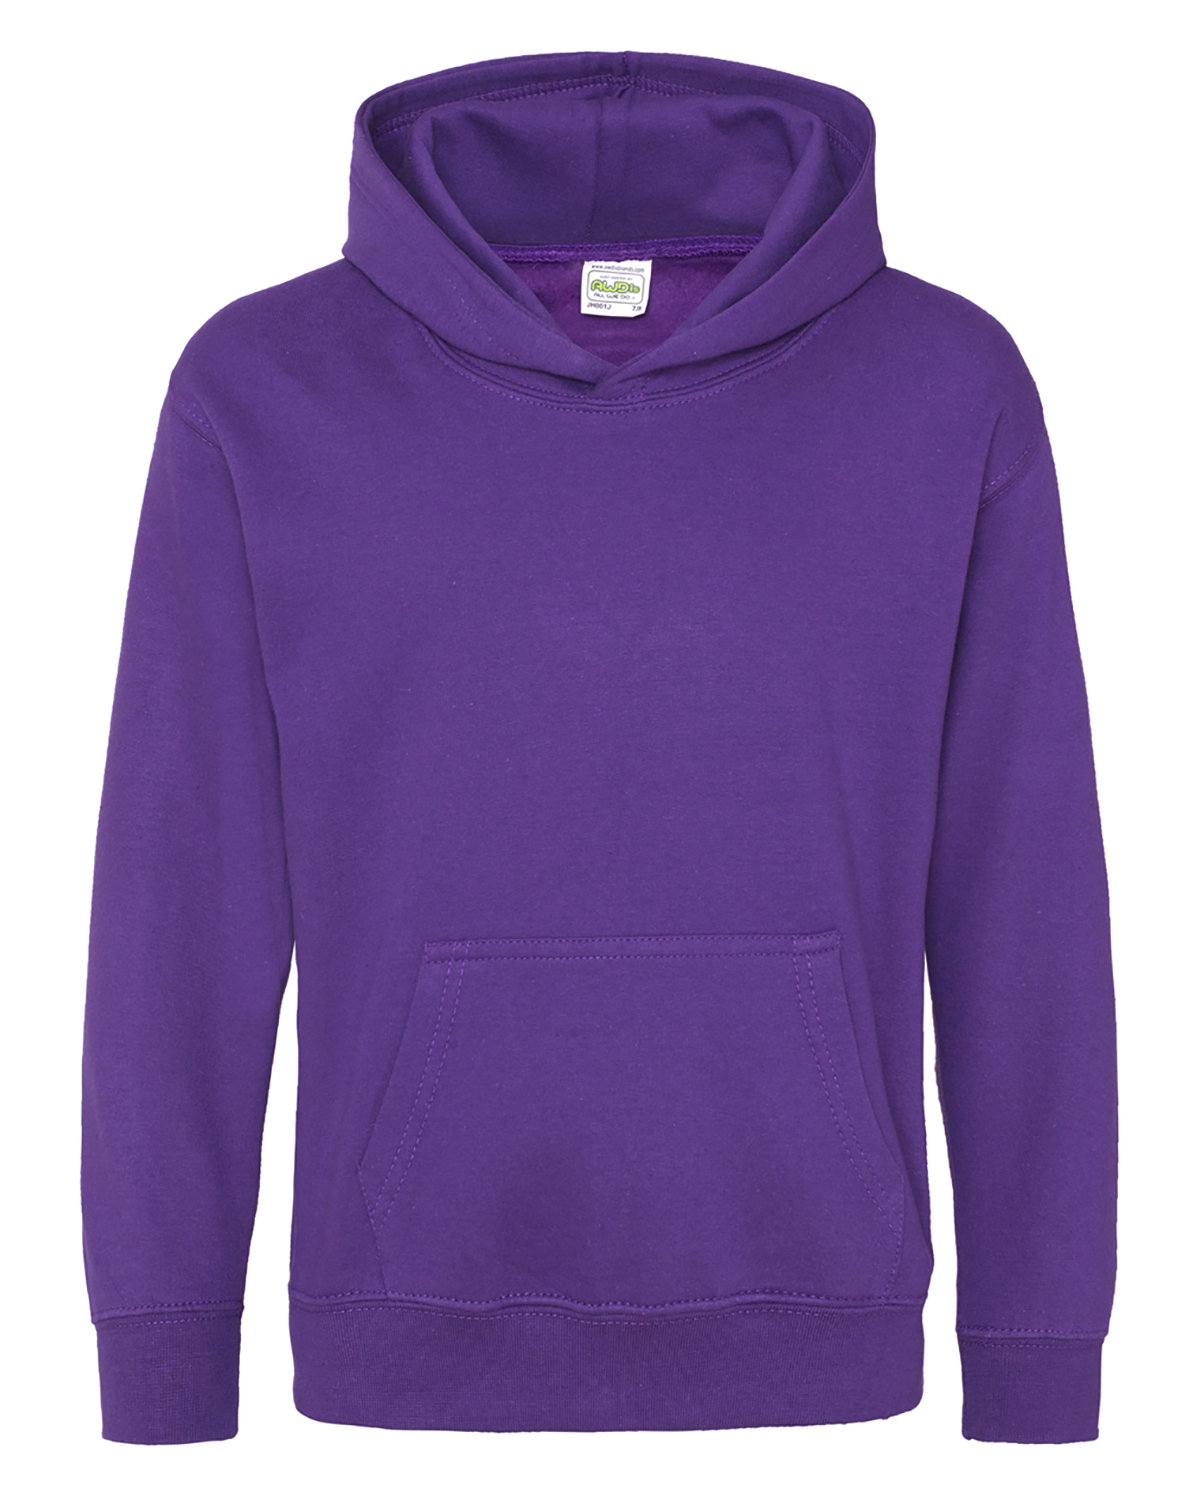 Just Hoods By AWDis Youth 80/20 Midweight College Hooded Sweatshirt PURPLE